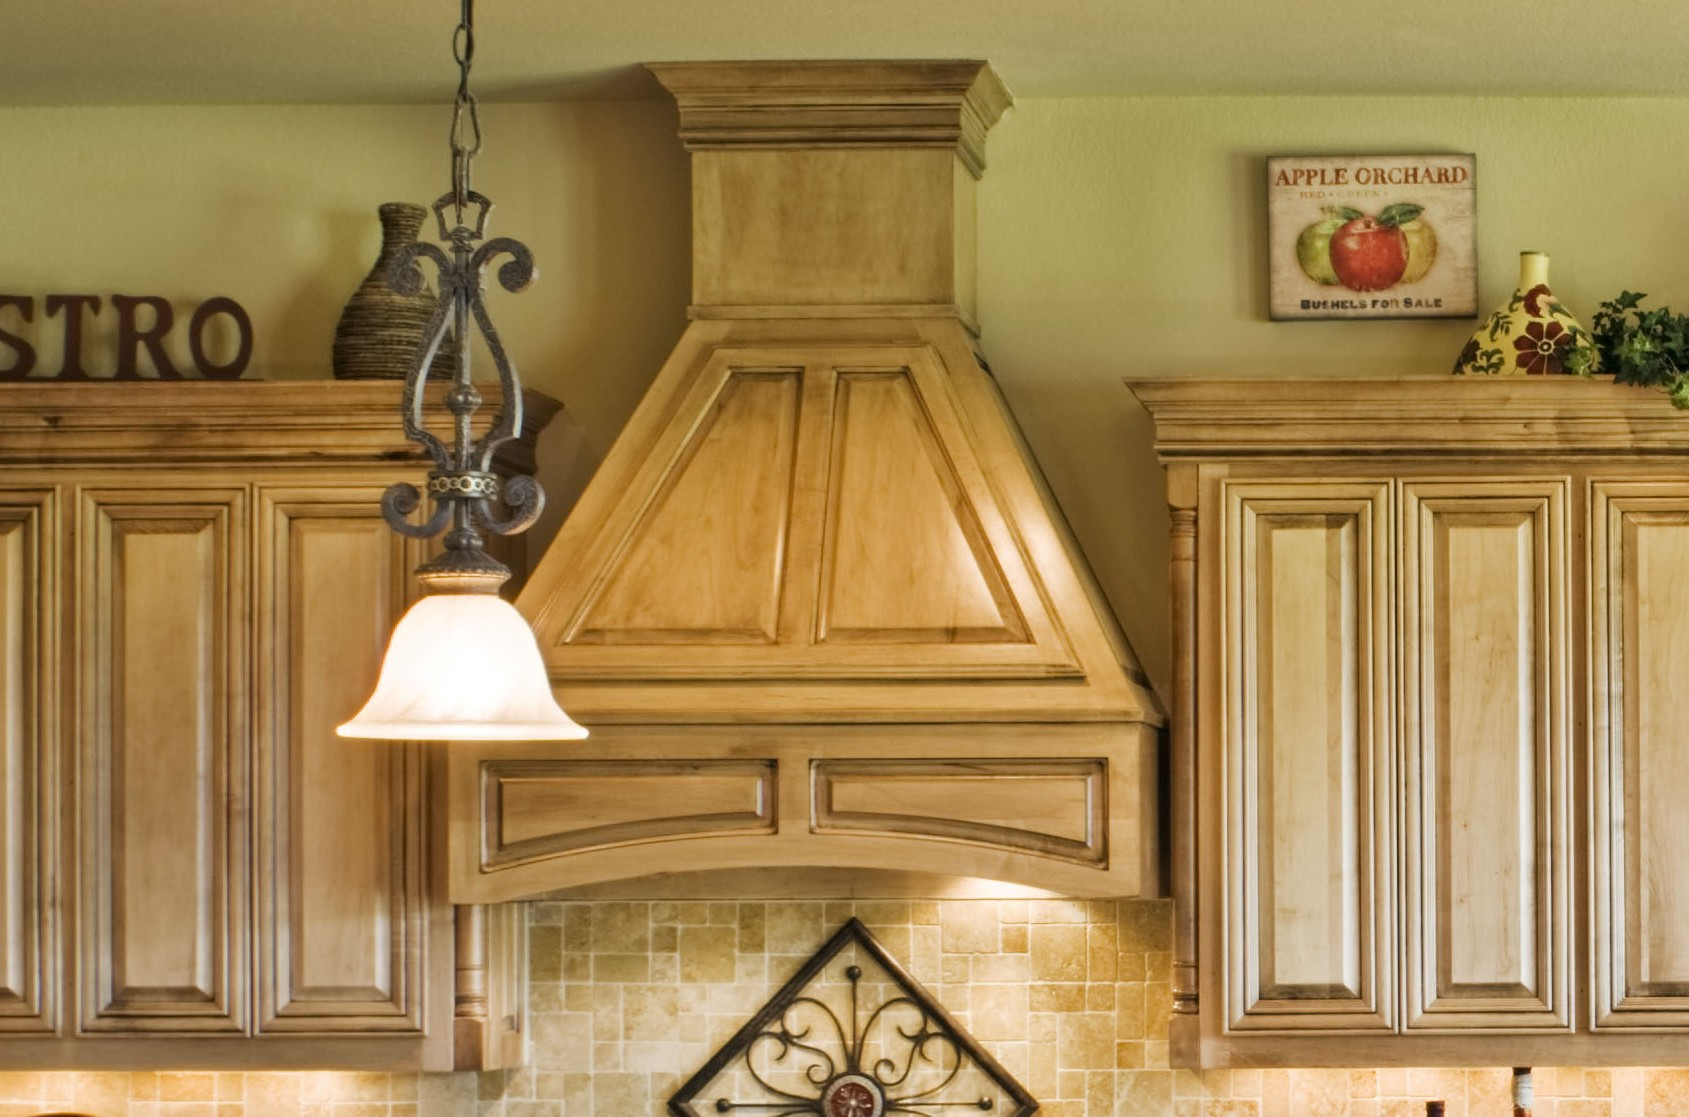 Best Kitchen Gallery: Vent Hood Elegant Burrows Cabi S Central Texas Builder of Wod Kitchen Hood Designs on rachelxblog.com